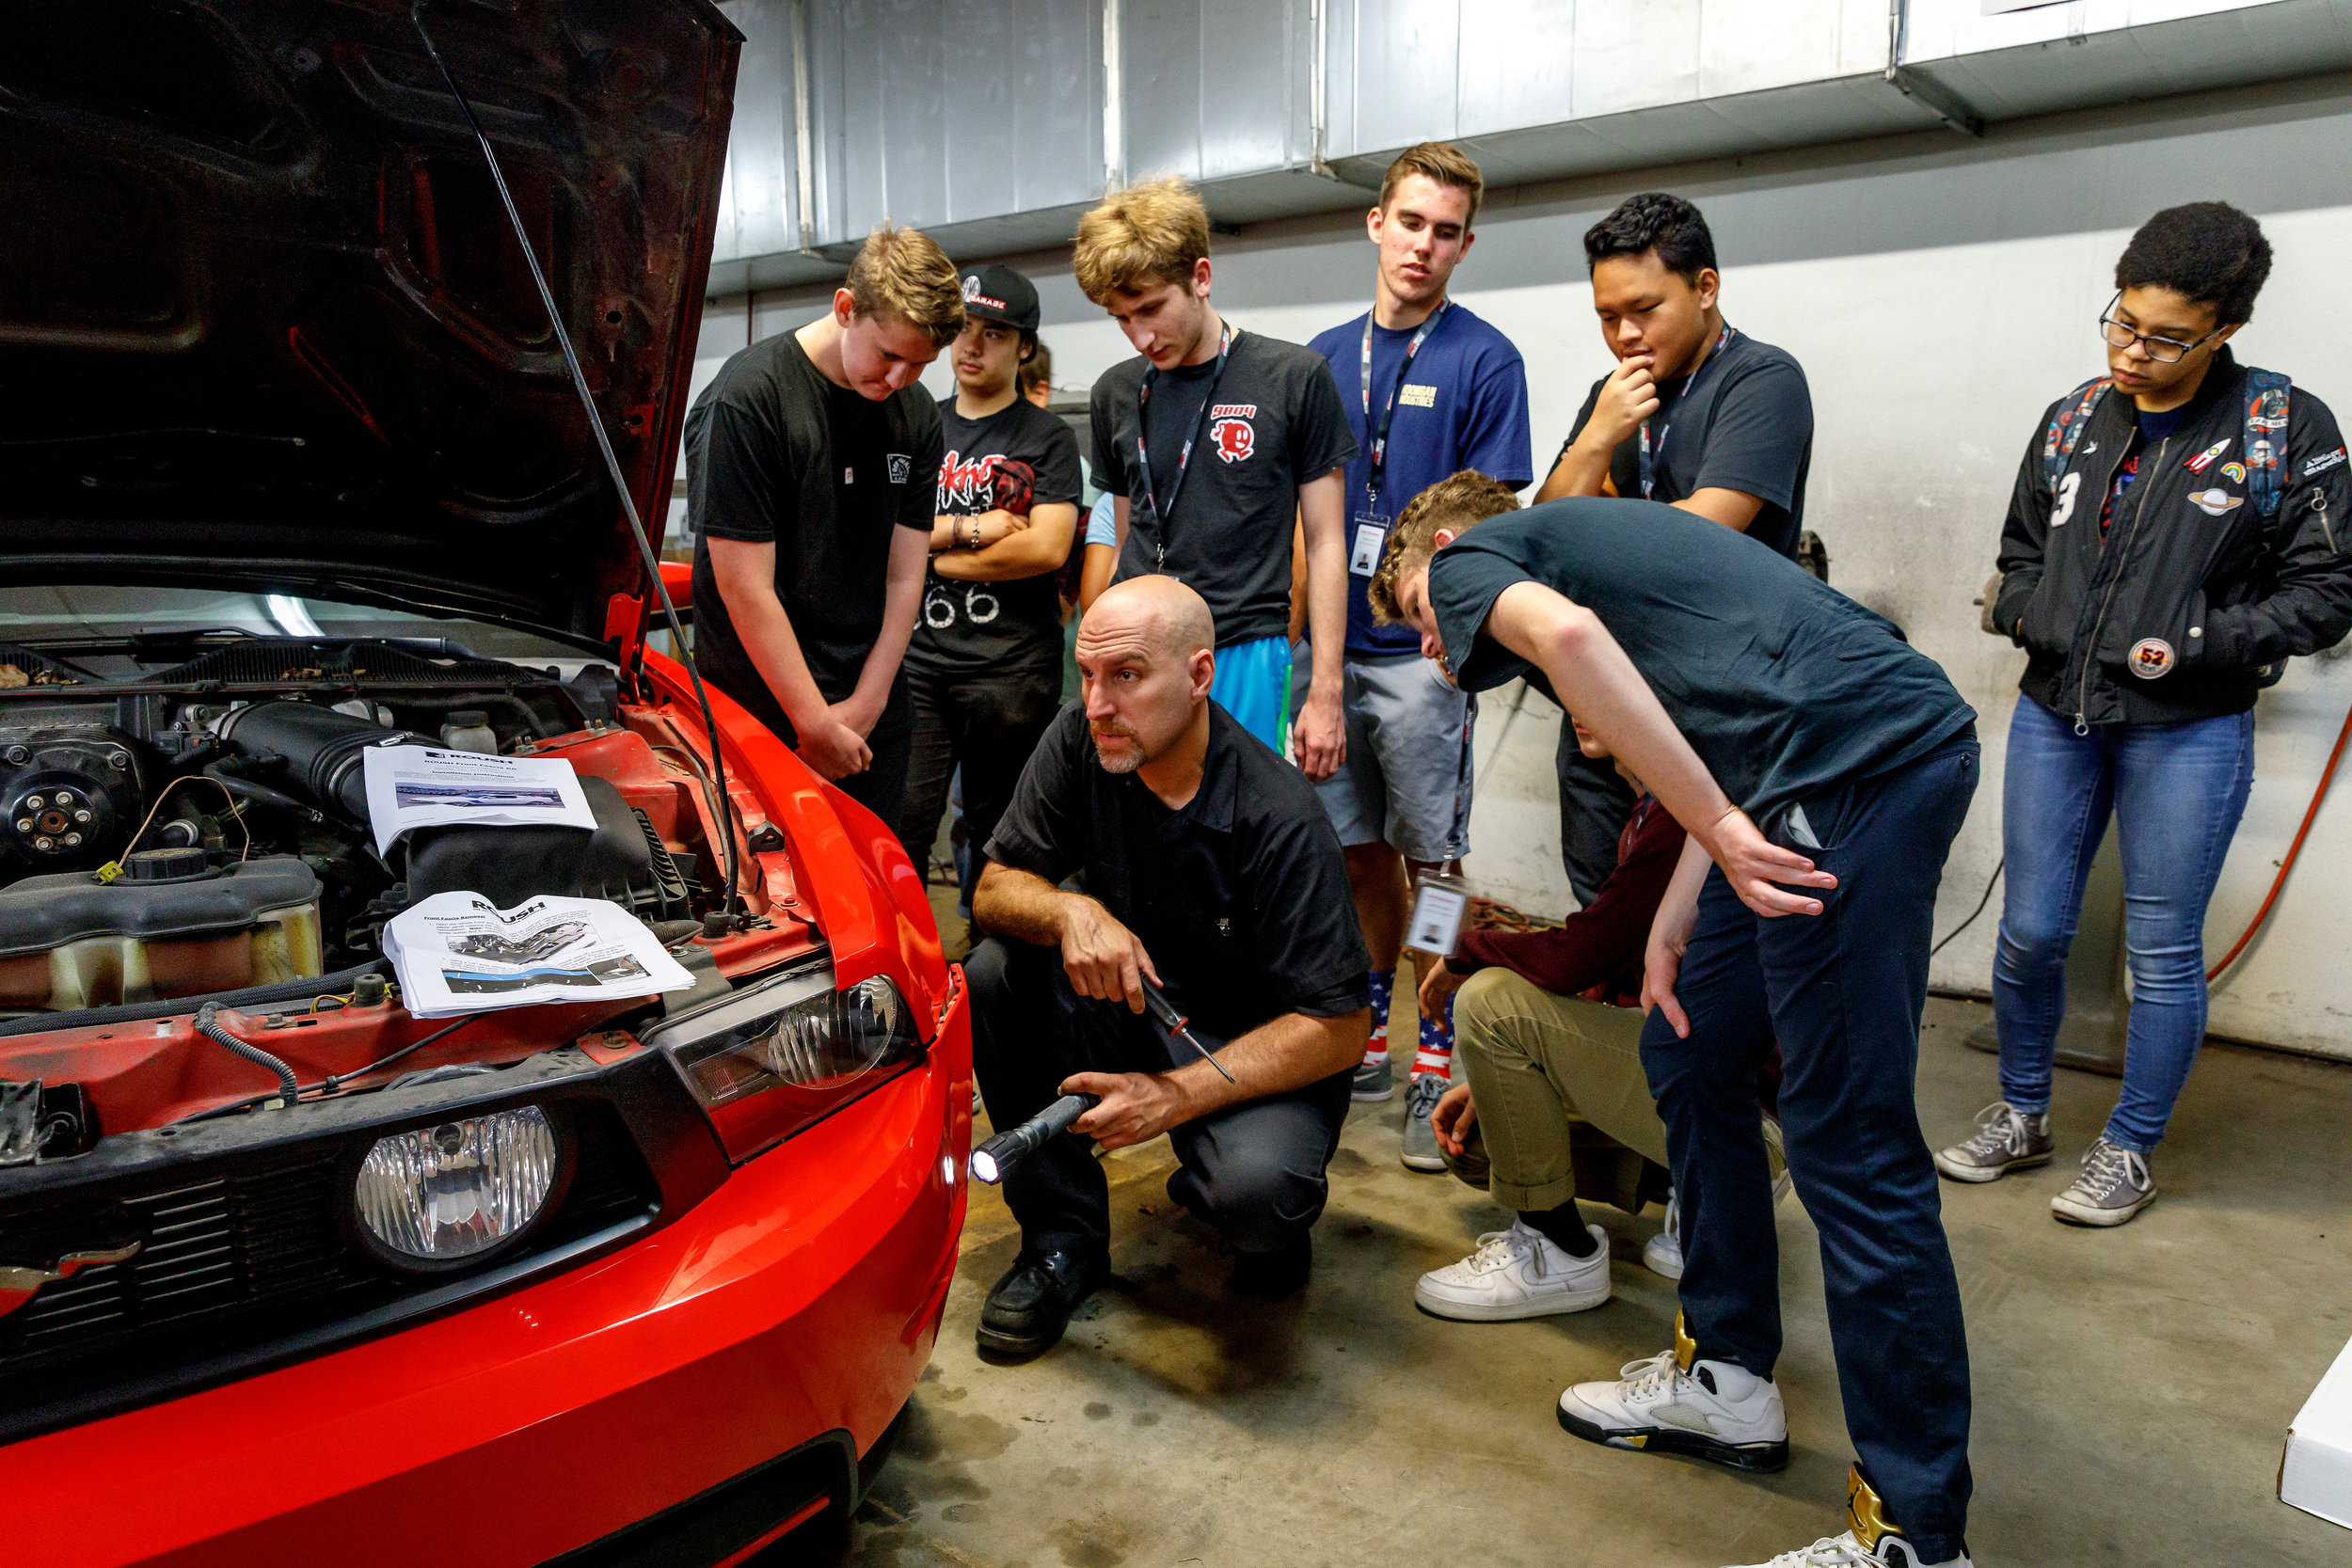 Teens examining the engine of a car with a Petersen Automotive Museum mechanic during the Teen Auto Workshop.